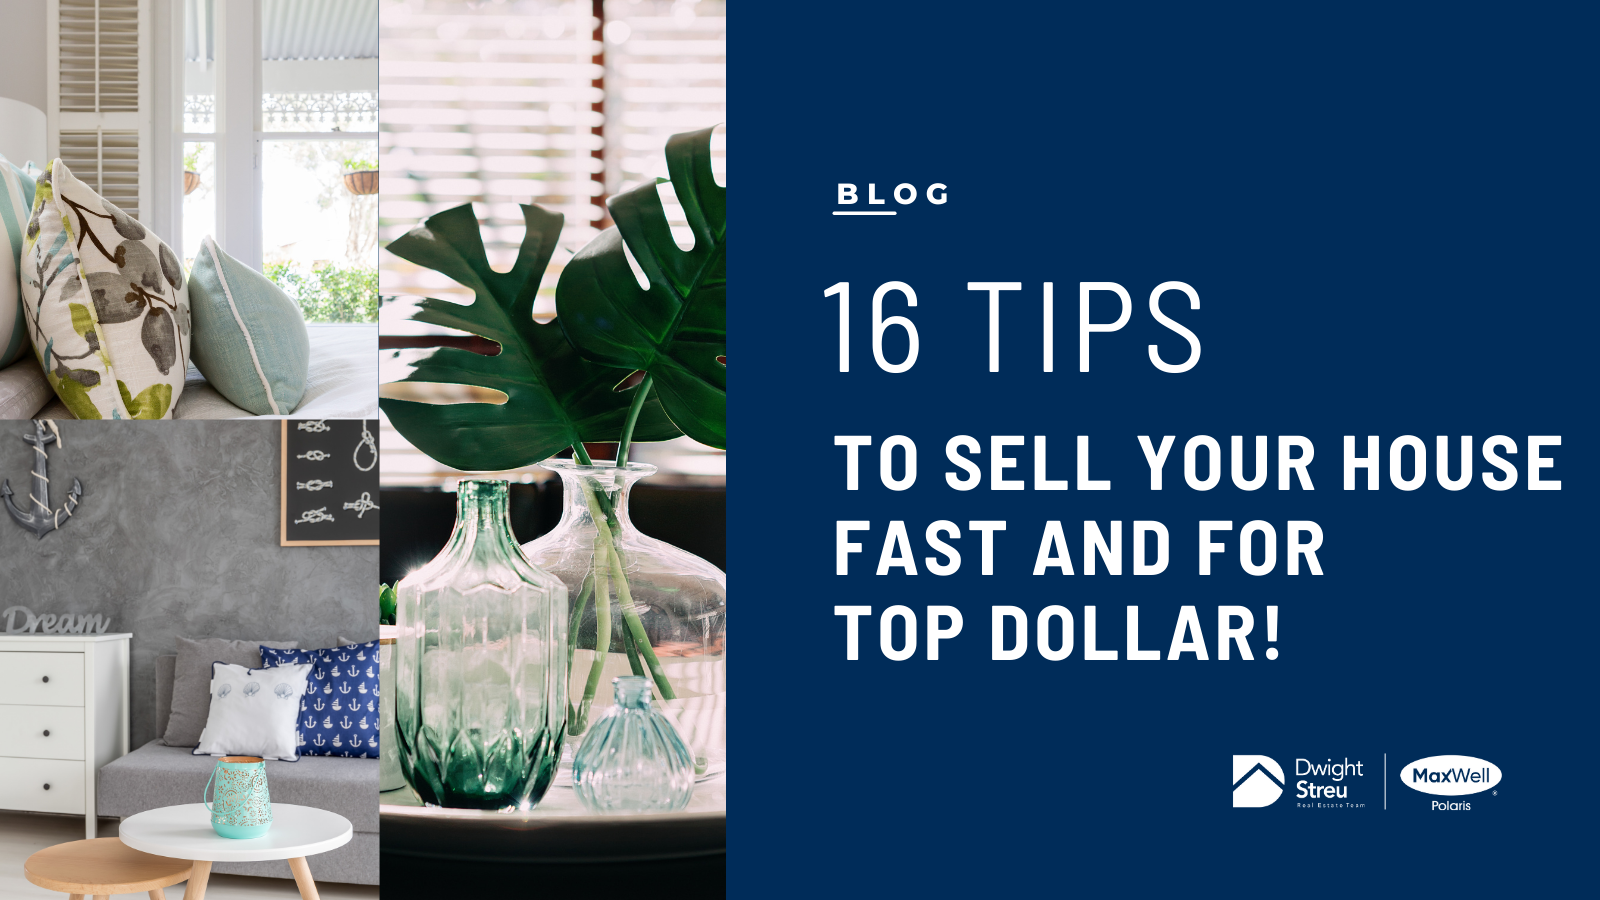 Steps to Sell a House / Tips to Sell Your House -Edmonton Realtor, Dwight Streu